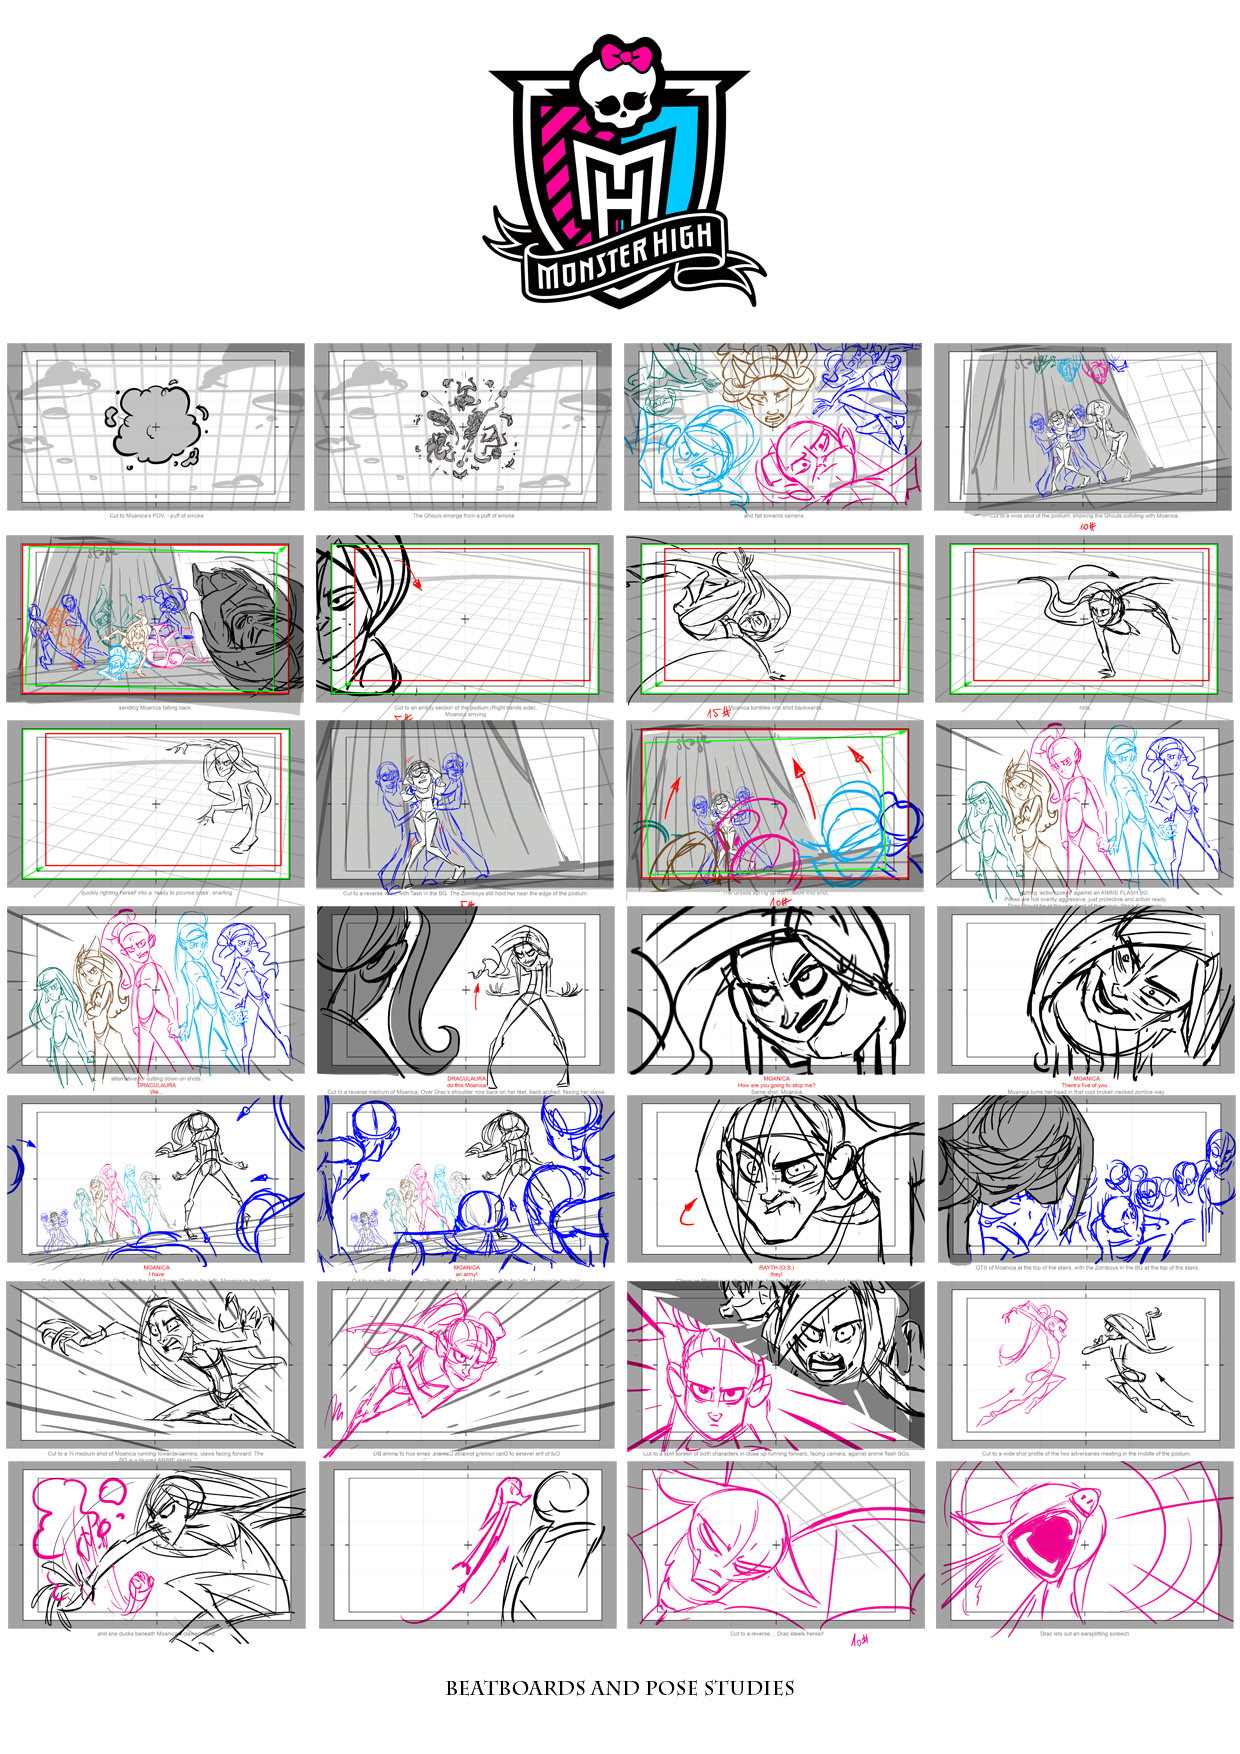 Miklos weigert storyboard page 10